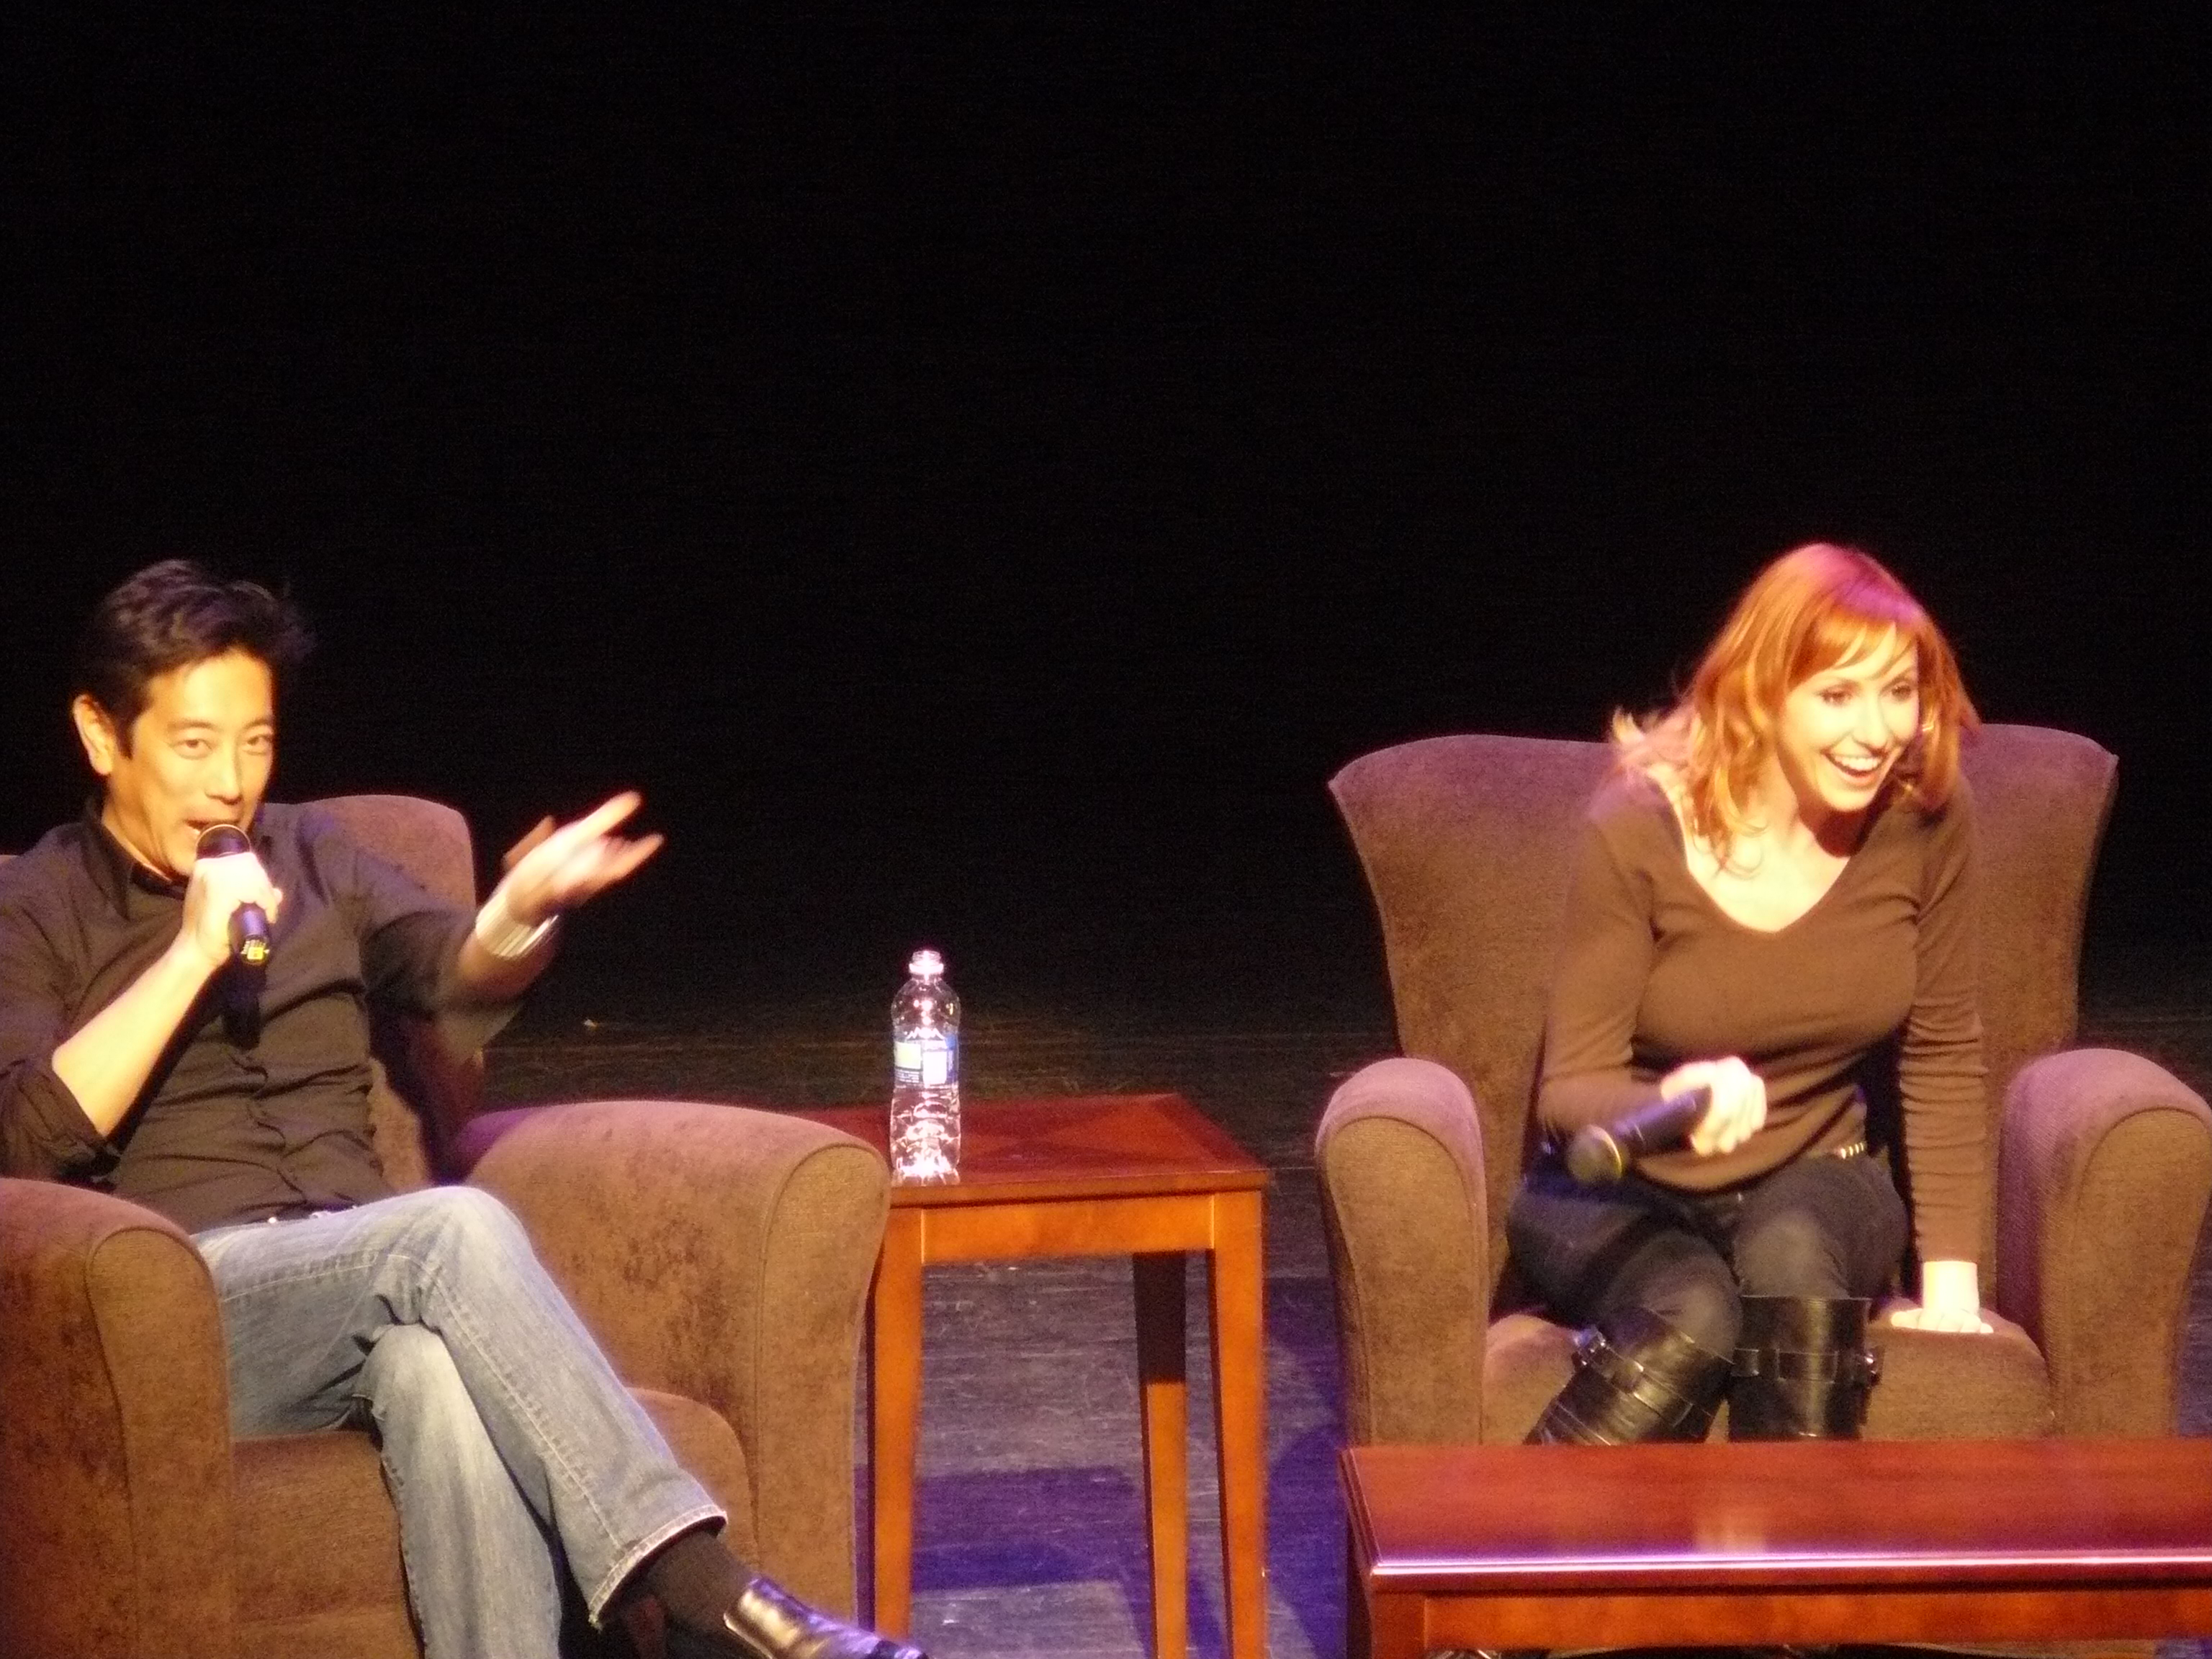 Mythbusters Kari and Grant at The Pullo Center